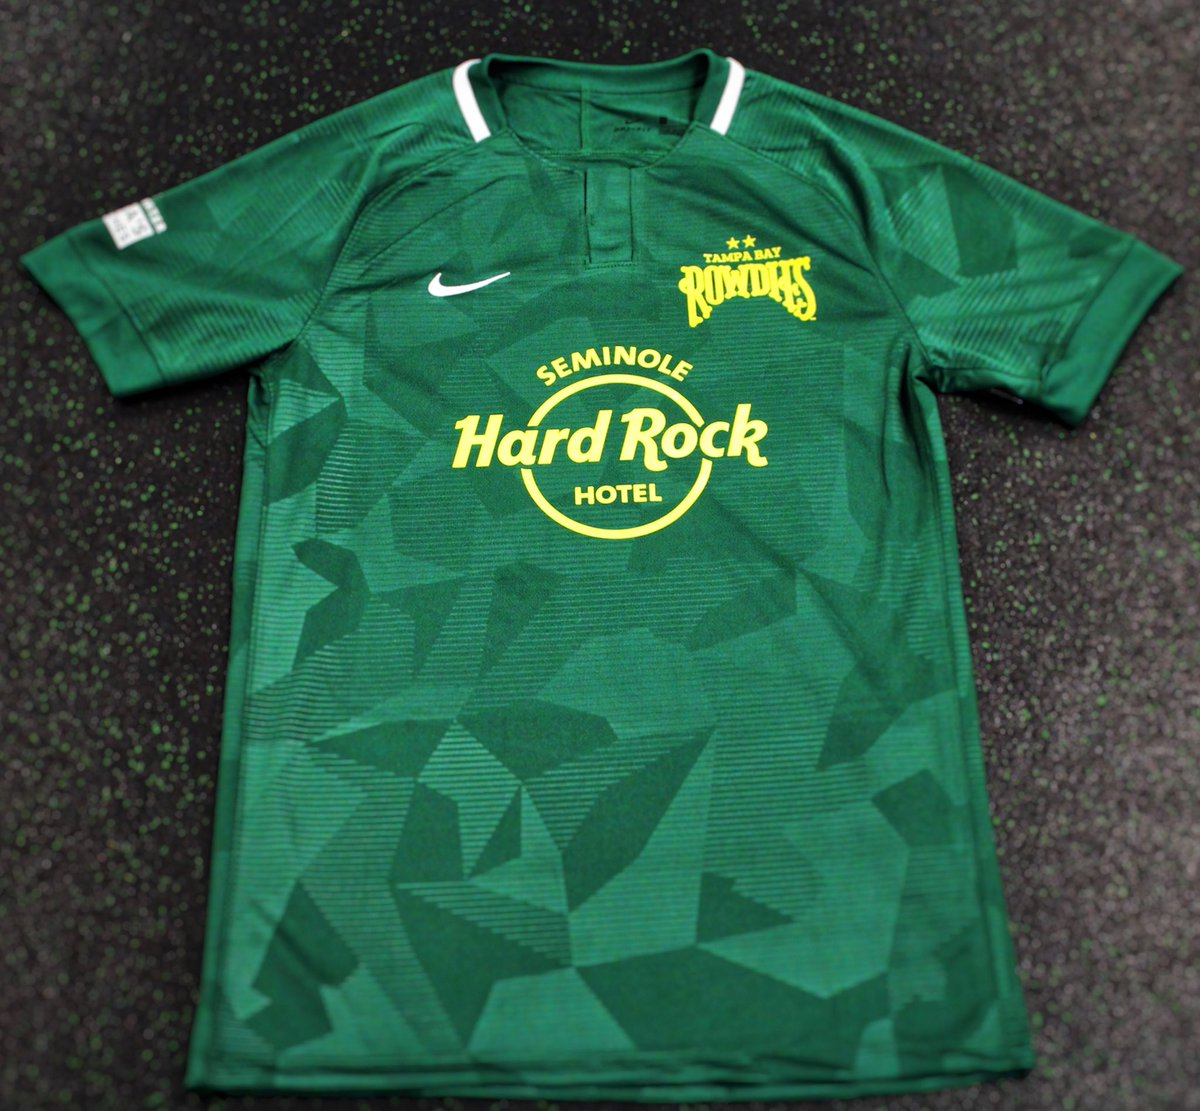 tampa bay rowdies y on twitter new preseason just in time for the rowdies suncoast invitational we ll debut these saturday night against impactmontreal https t co of4yt0qinq tampa bay rowdies y on twitter new